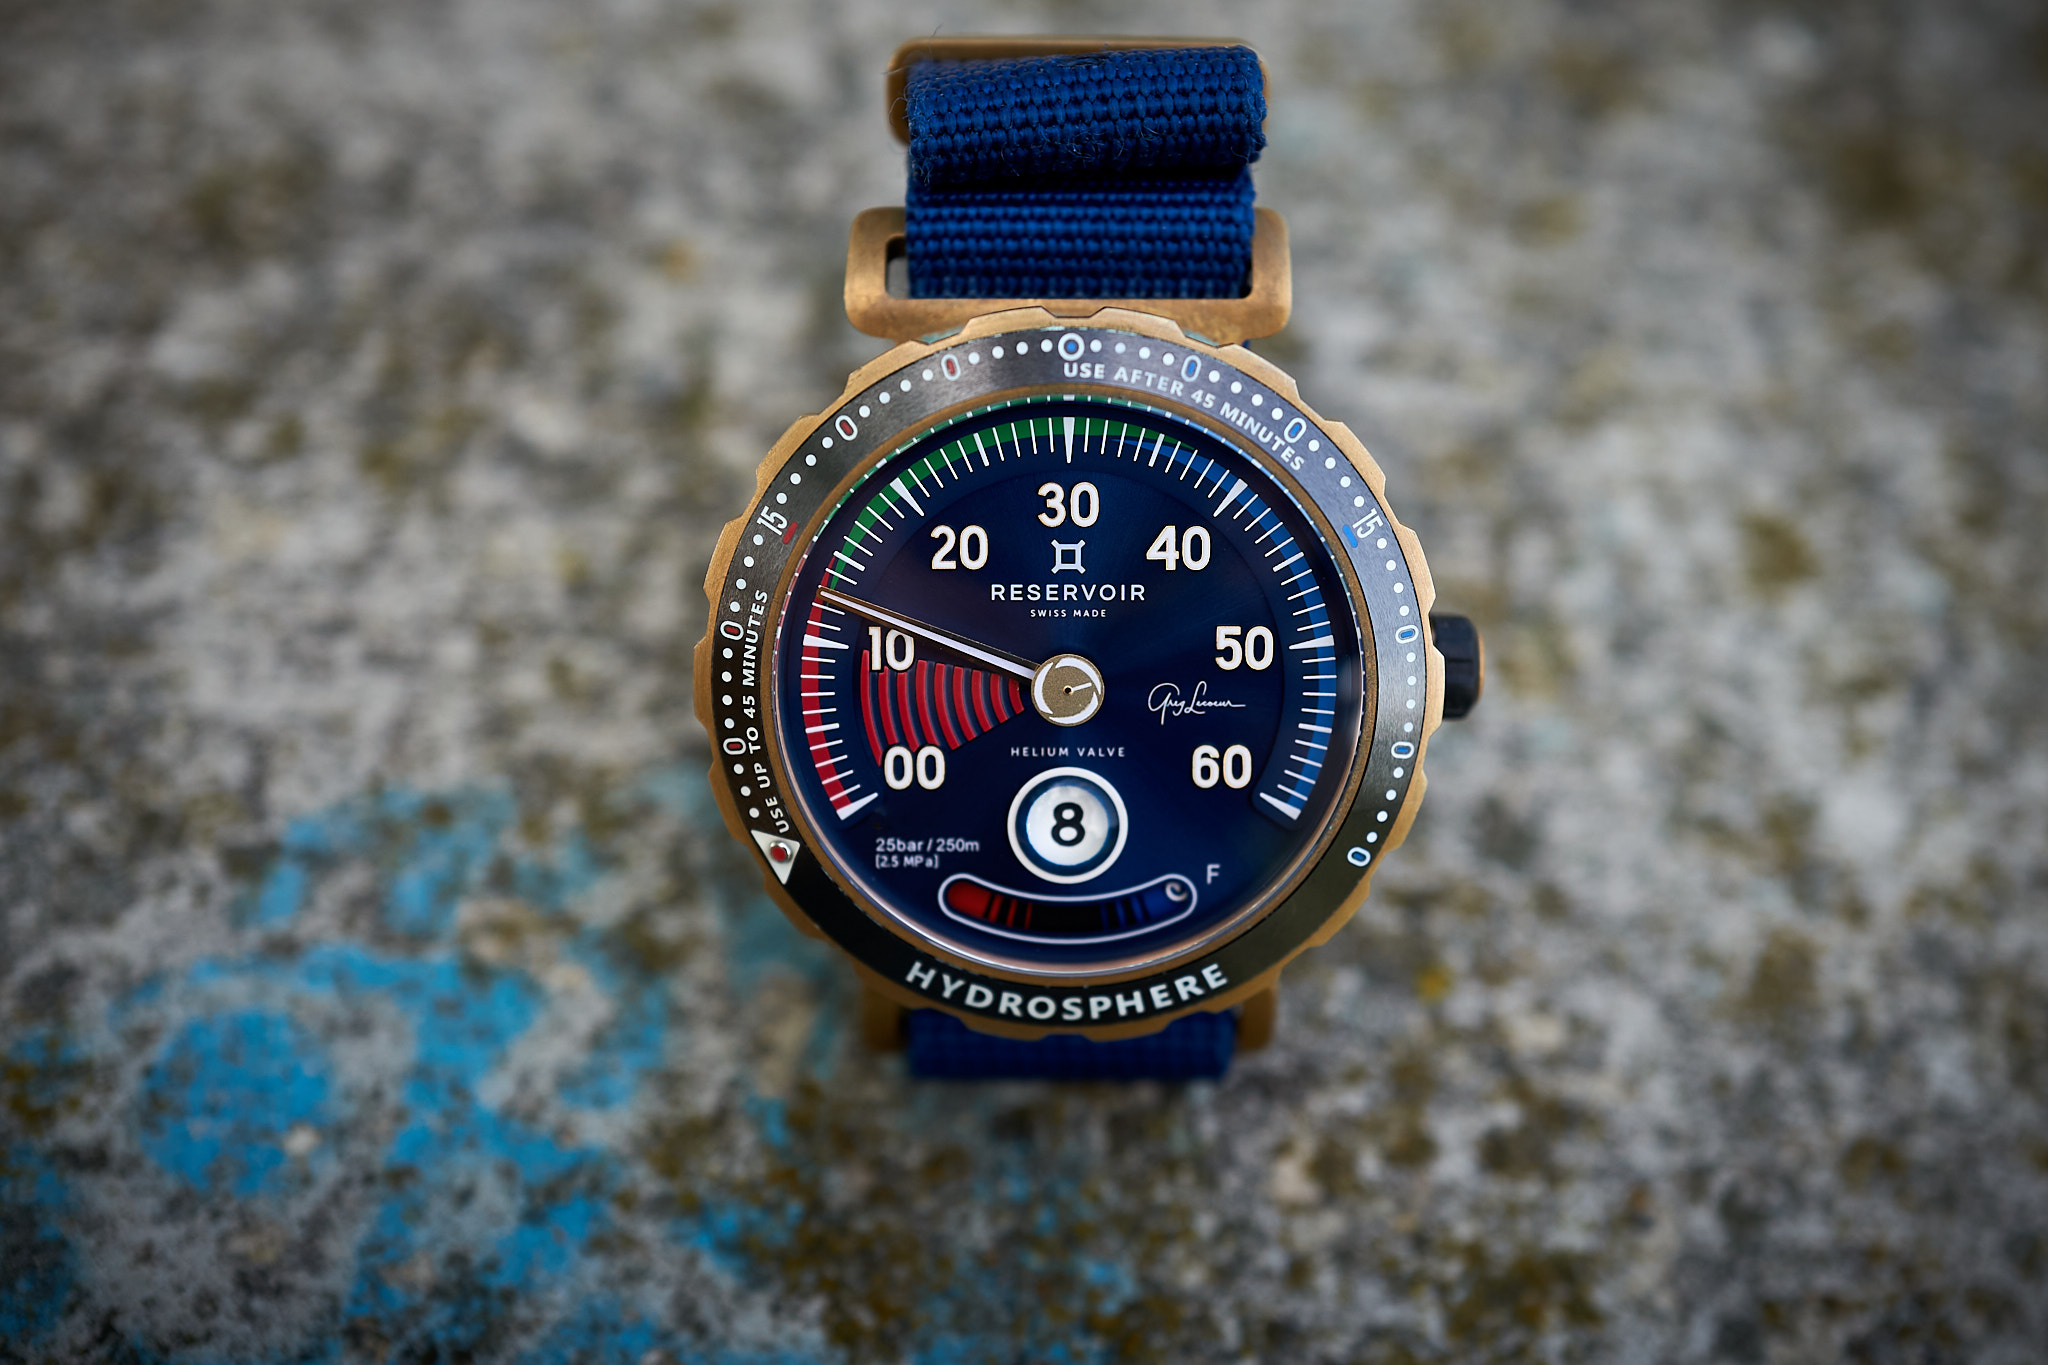 Reservoir Hydrosphere Greg Lecoeur Limited Edition Bronze - in-depth field review dive watch